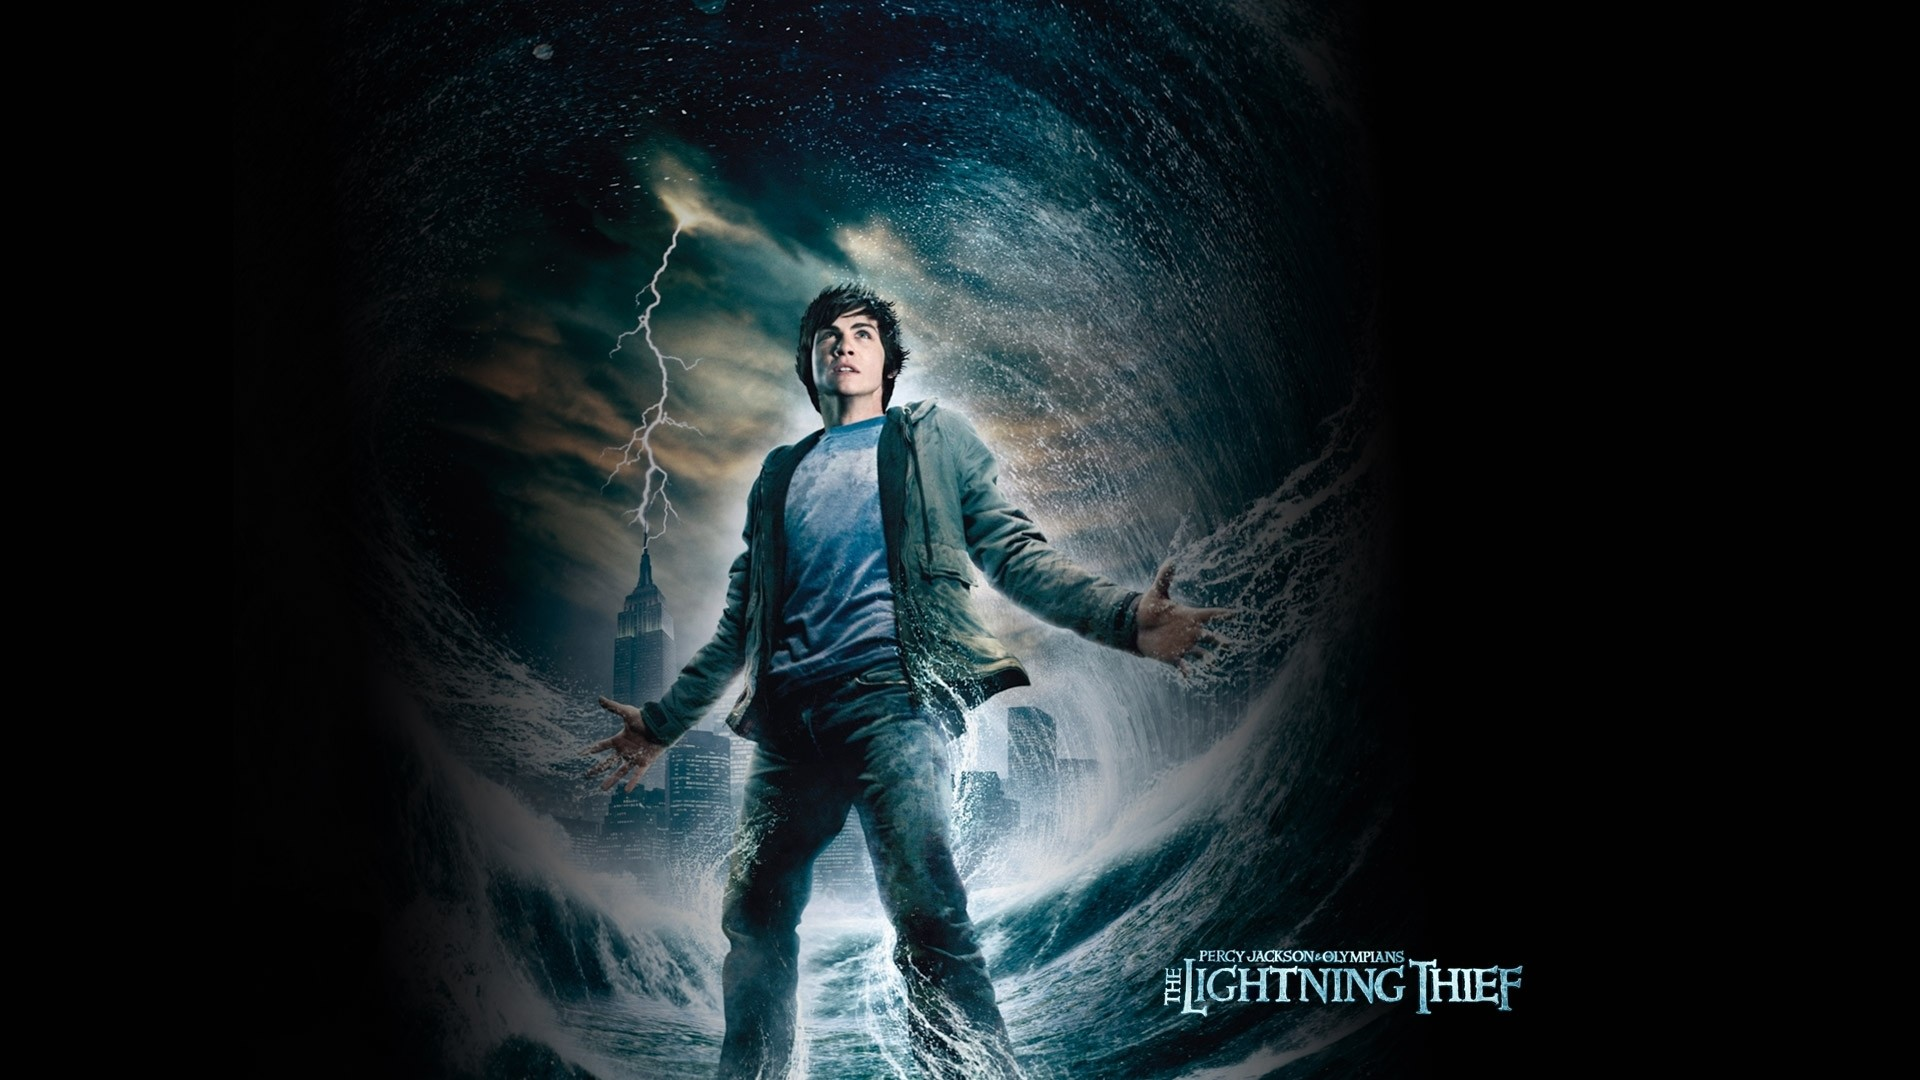 Percy Jackson Desktop Wallpapers – HD Wallpapers Backgrounds of Your .